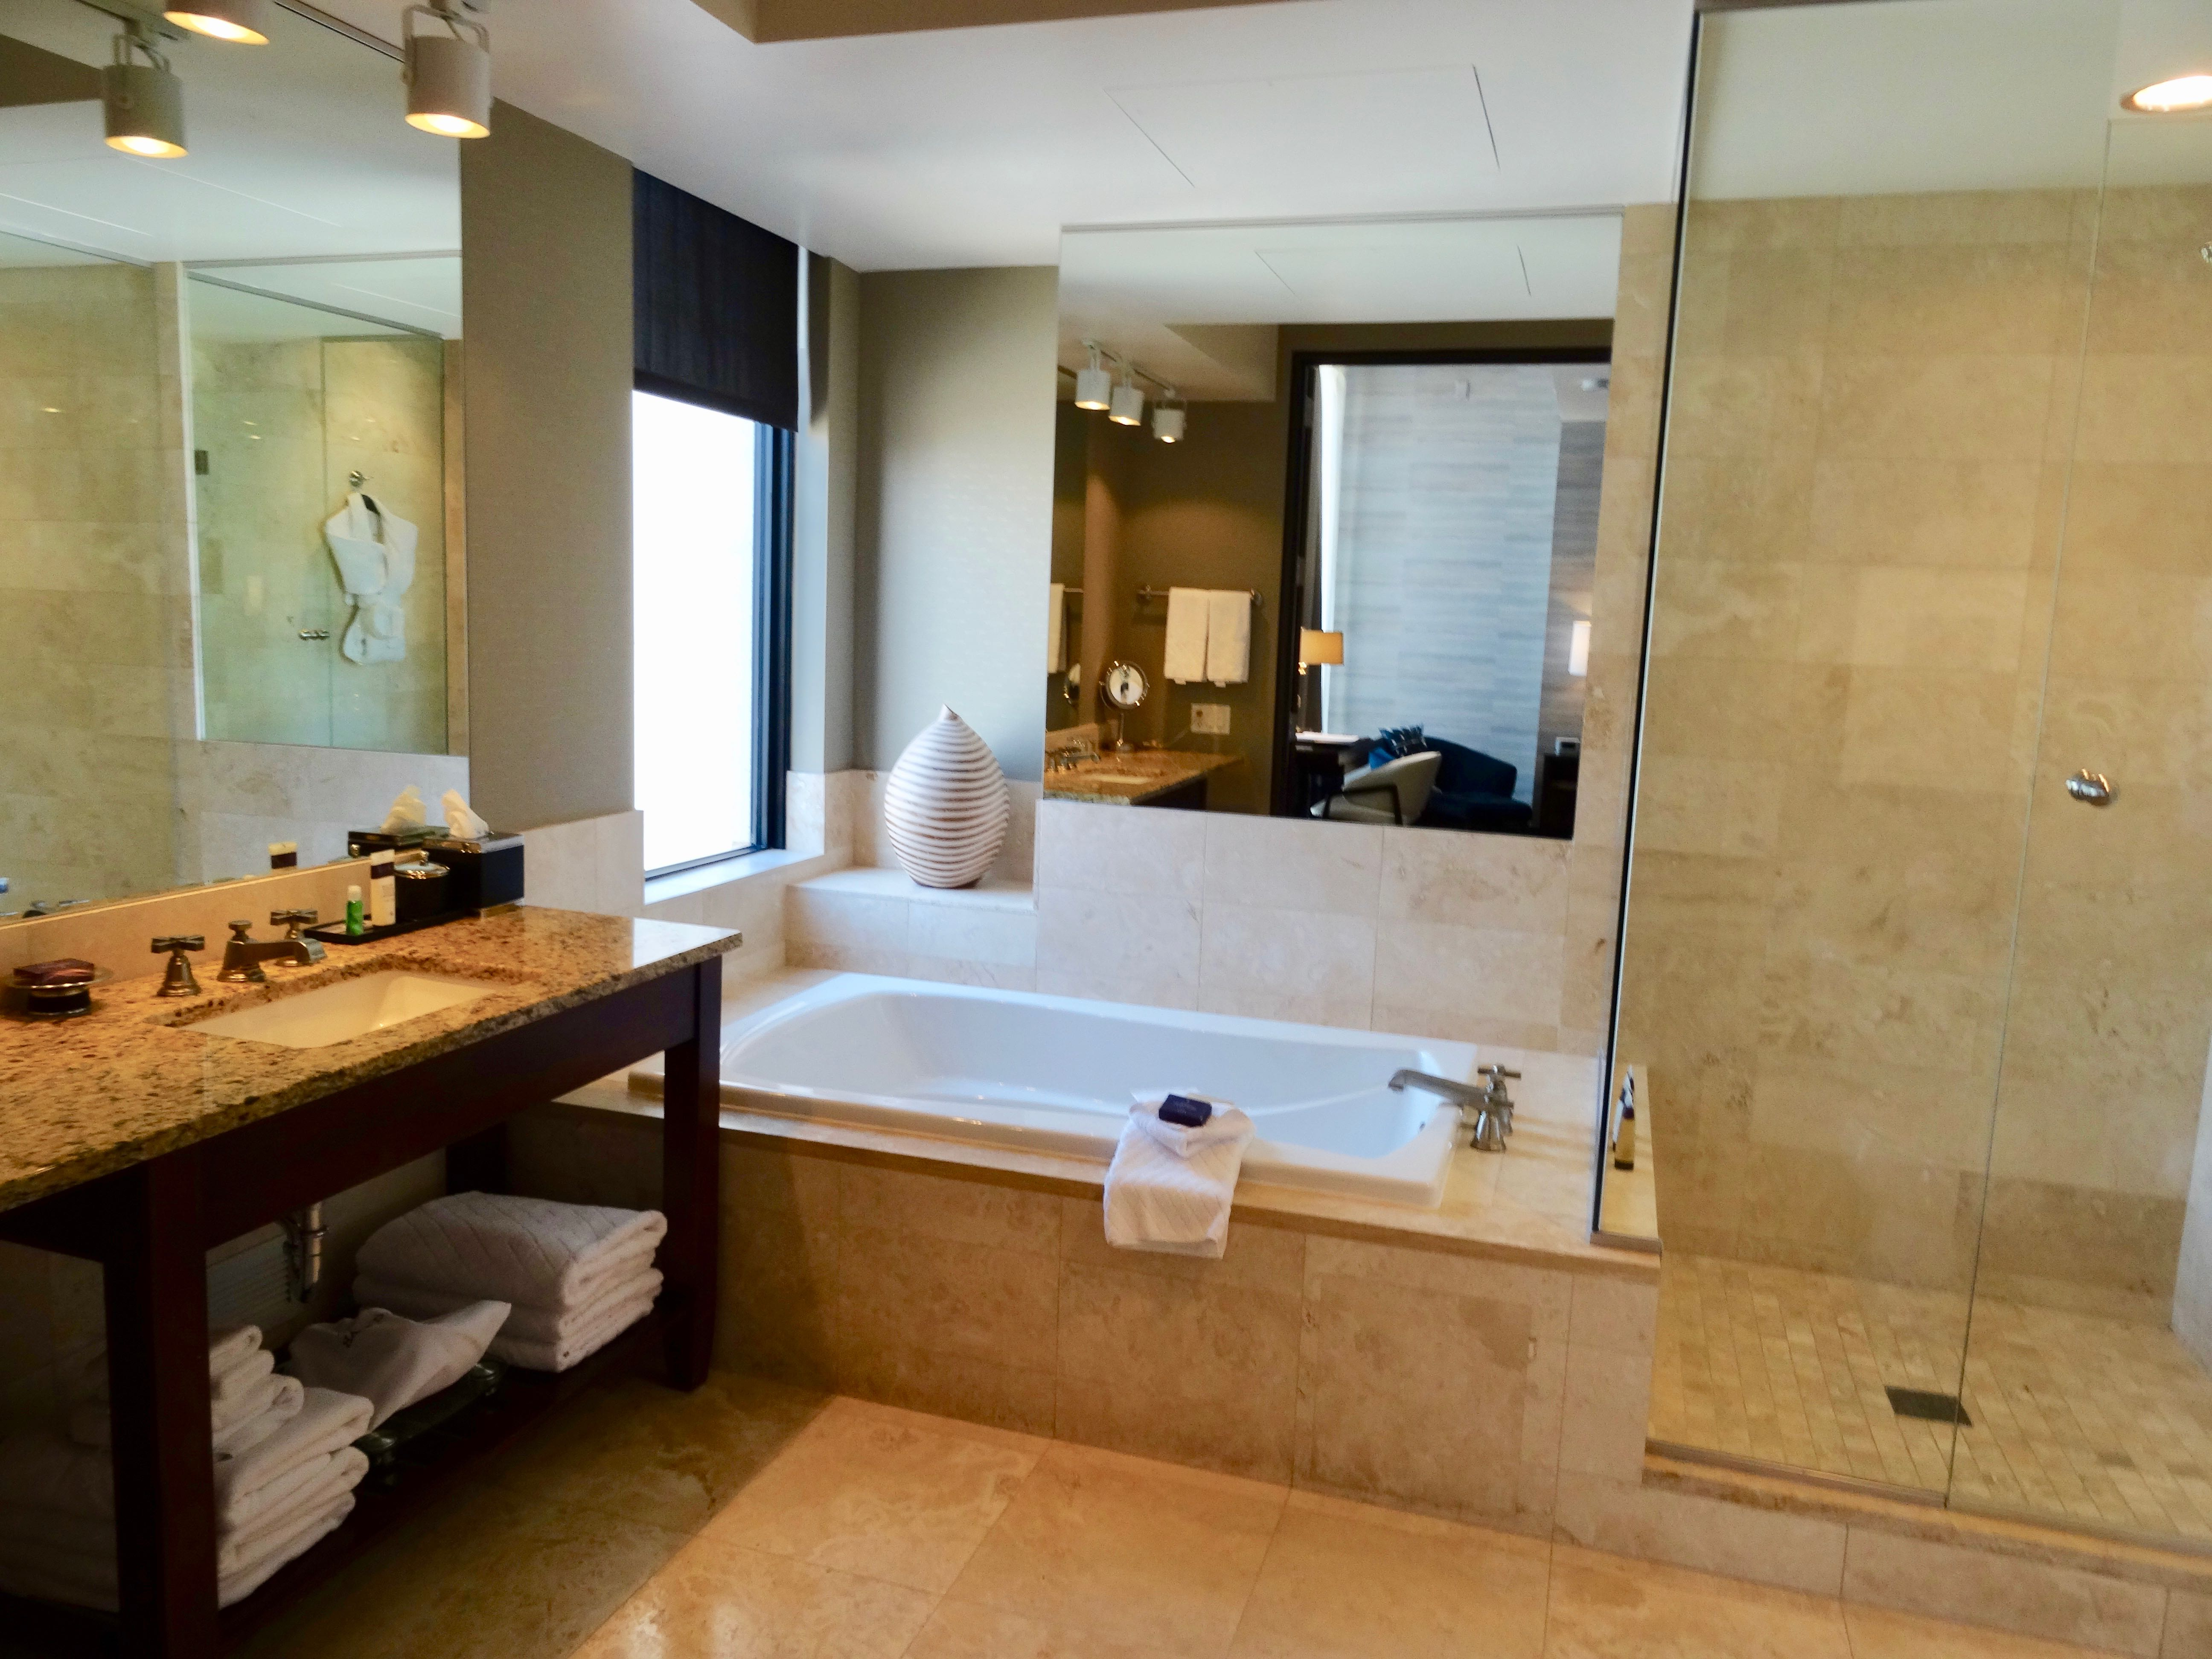 Grand Deluxe Room Bathroom at Hotel Ivy Minneapolis